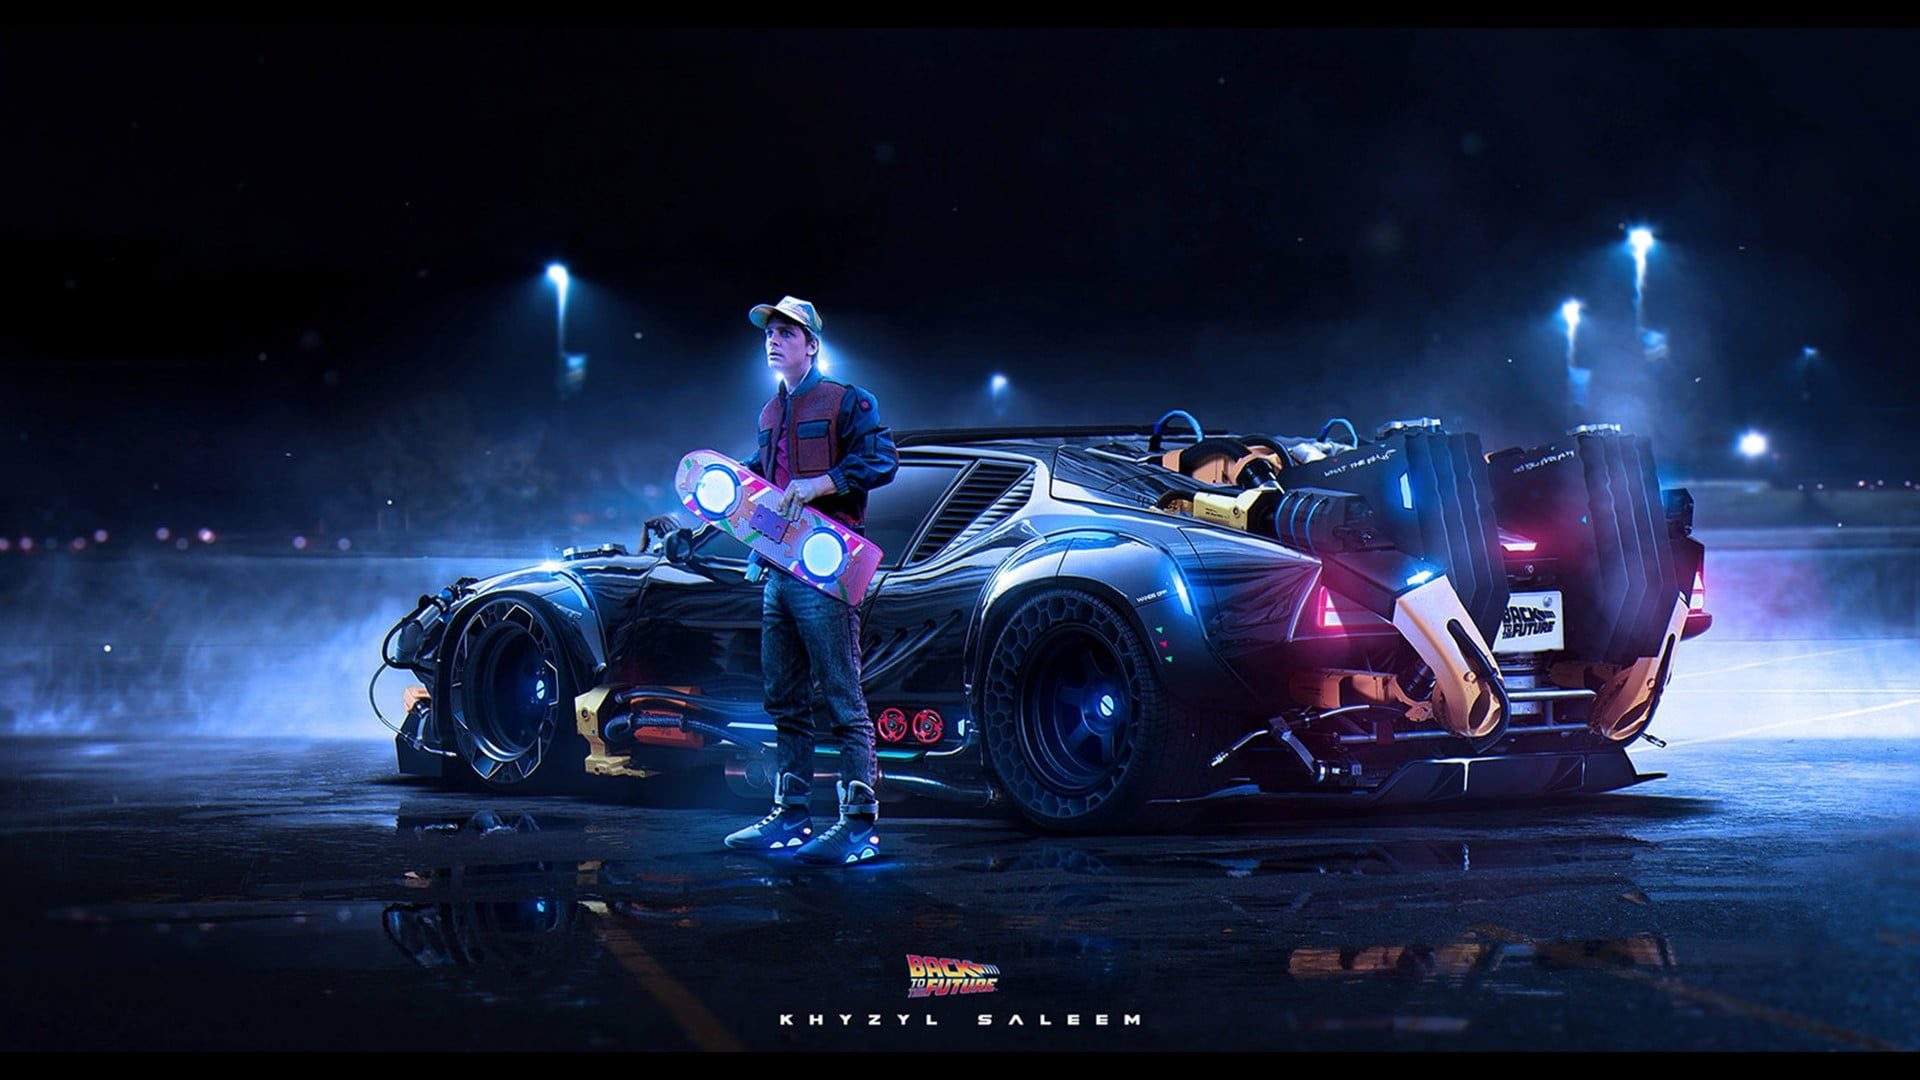 Black Vehicle Back To The Future Artwork Digital Art Car Dark